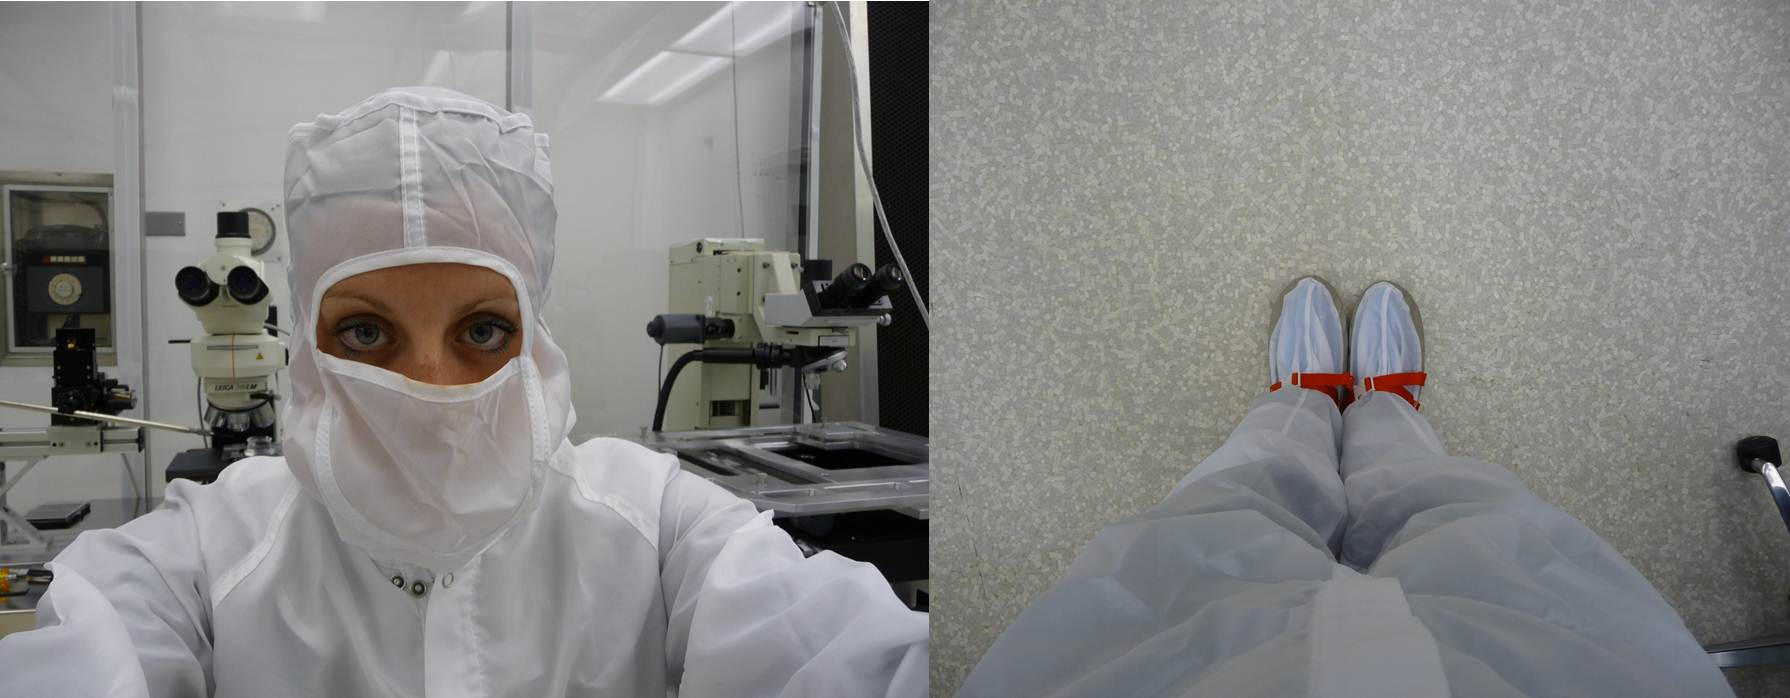 Me in my cleansuit at NASA Cosmic Dust Lab